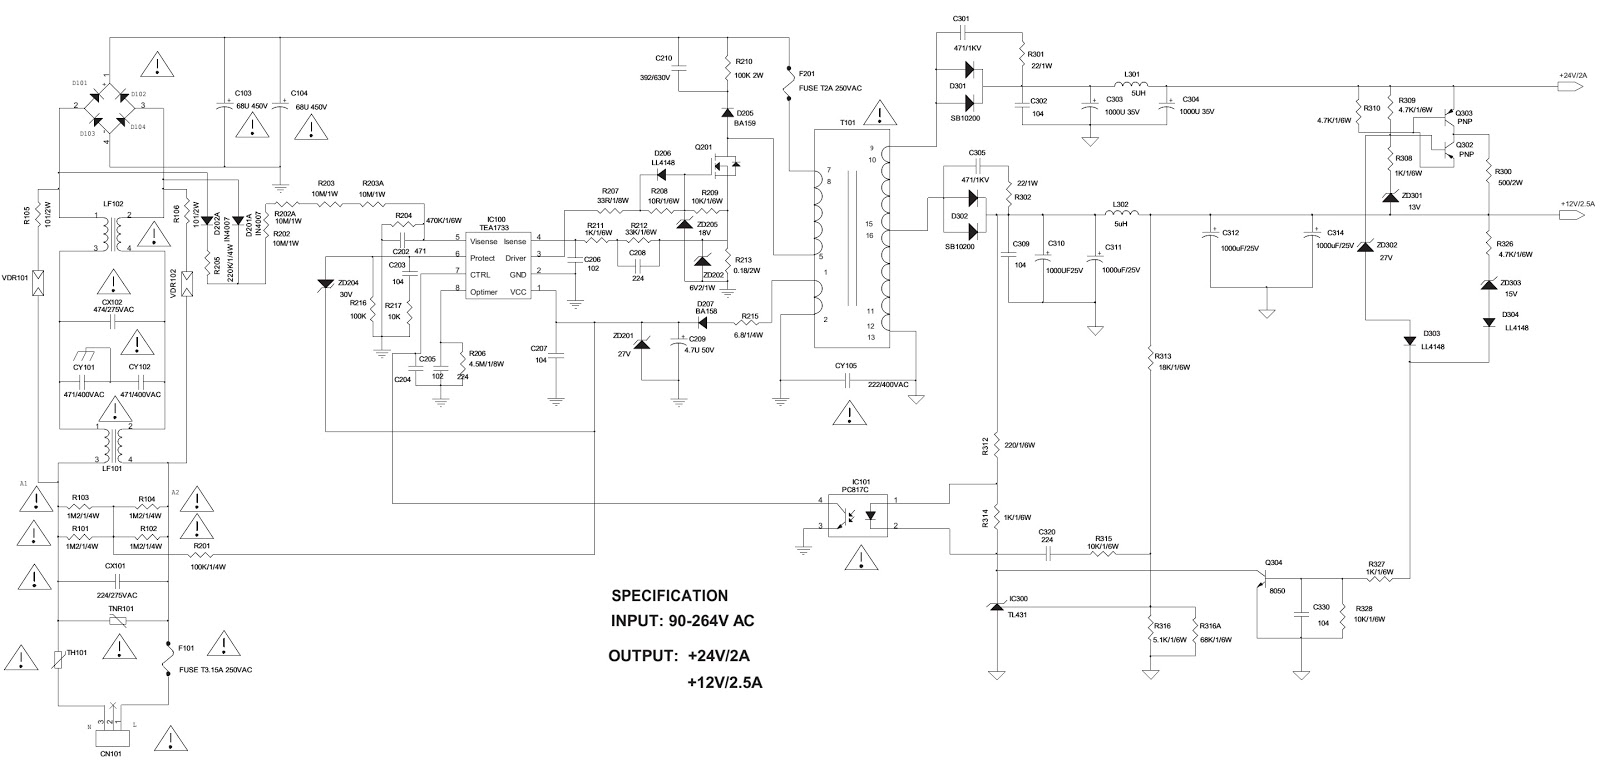 toshiba led tv schematic diagram schematic wiring diagram rh 14 fhuig chamas naturatelier de toshiba 32hv10ze specifications toshiba led tv schematic diagram